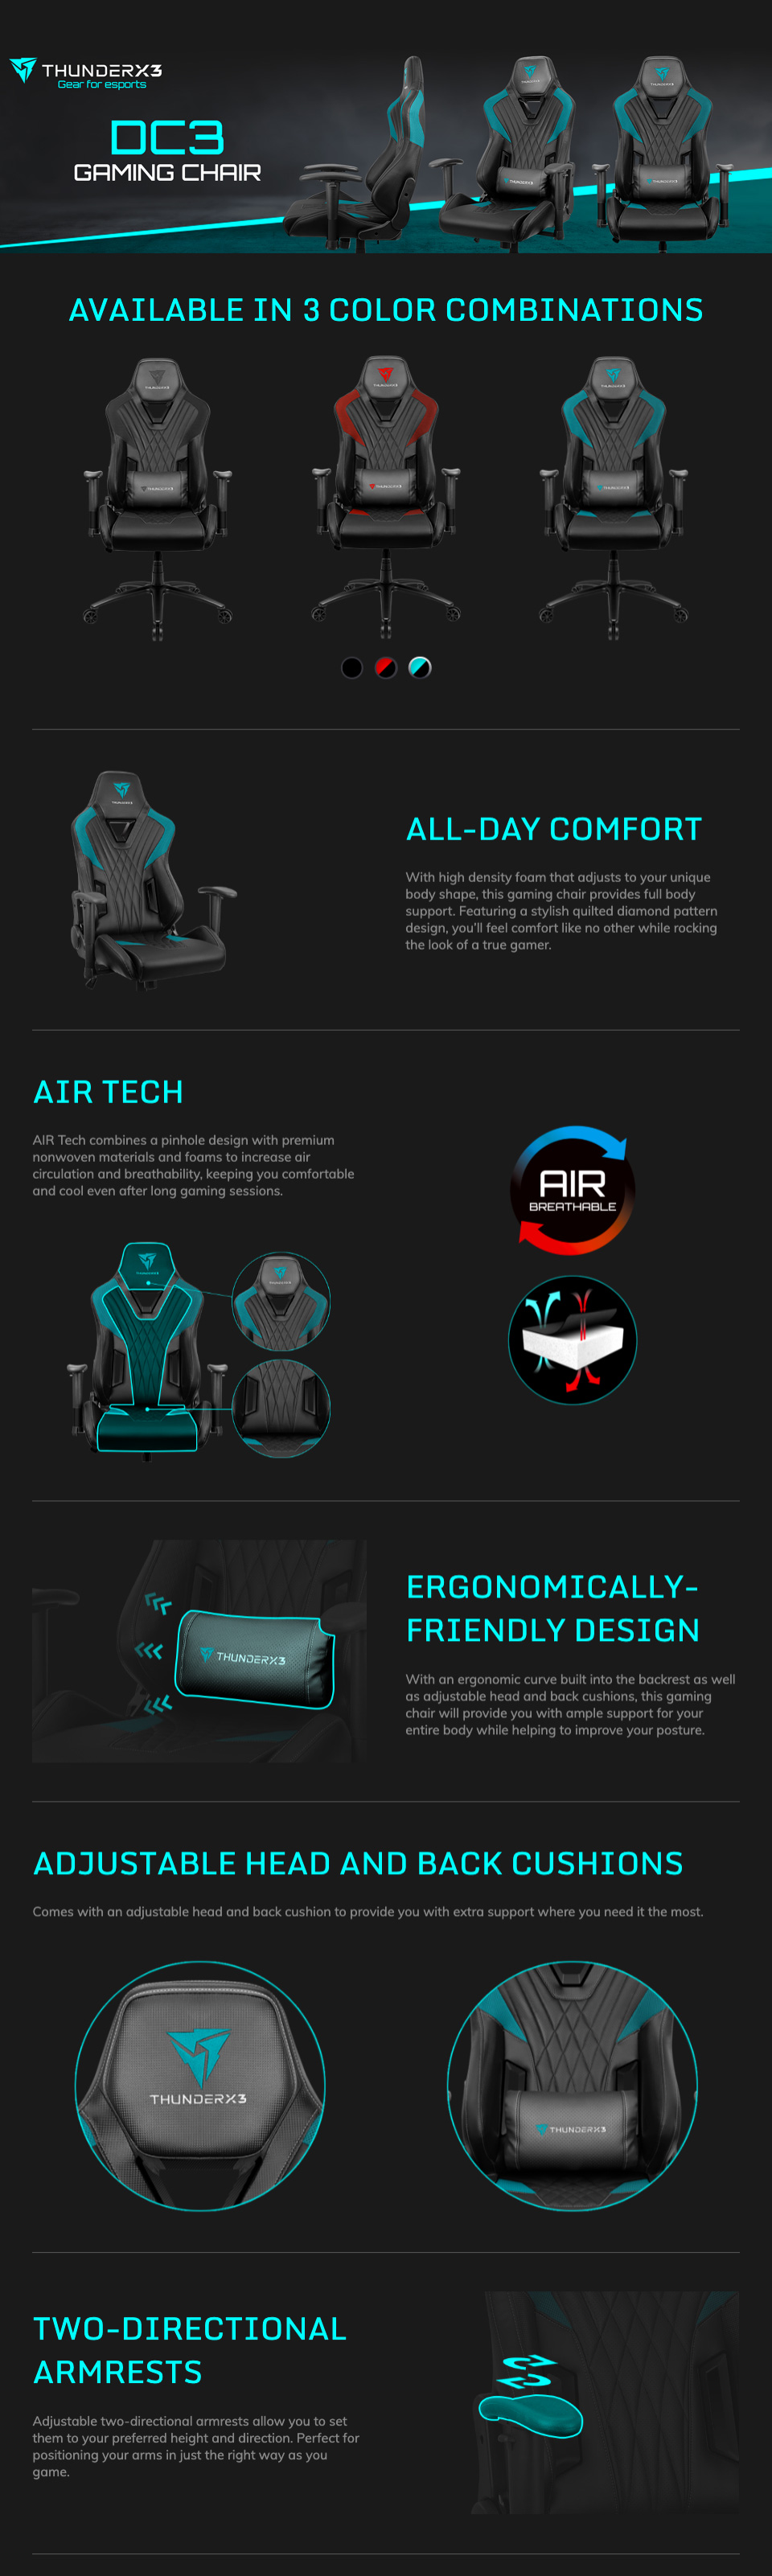 Aerocool ThunderX3 DC3 Gaming Chair Black features